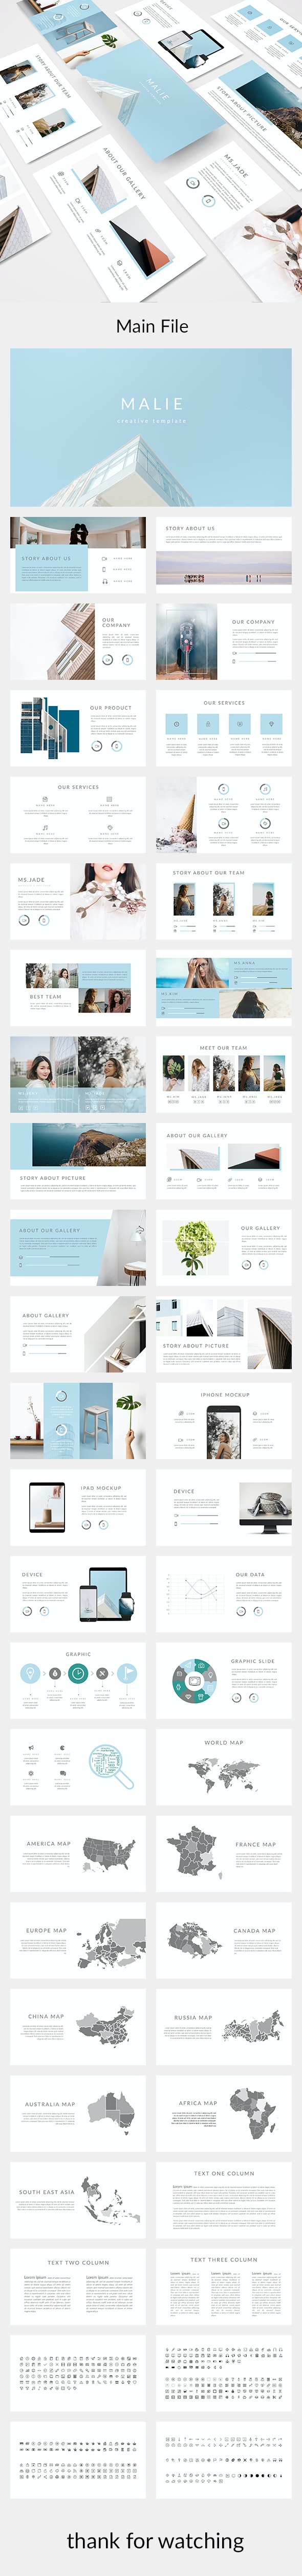 Malie - Creative Powerpoint Template - Creative PowerPoint Templates